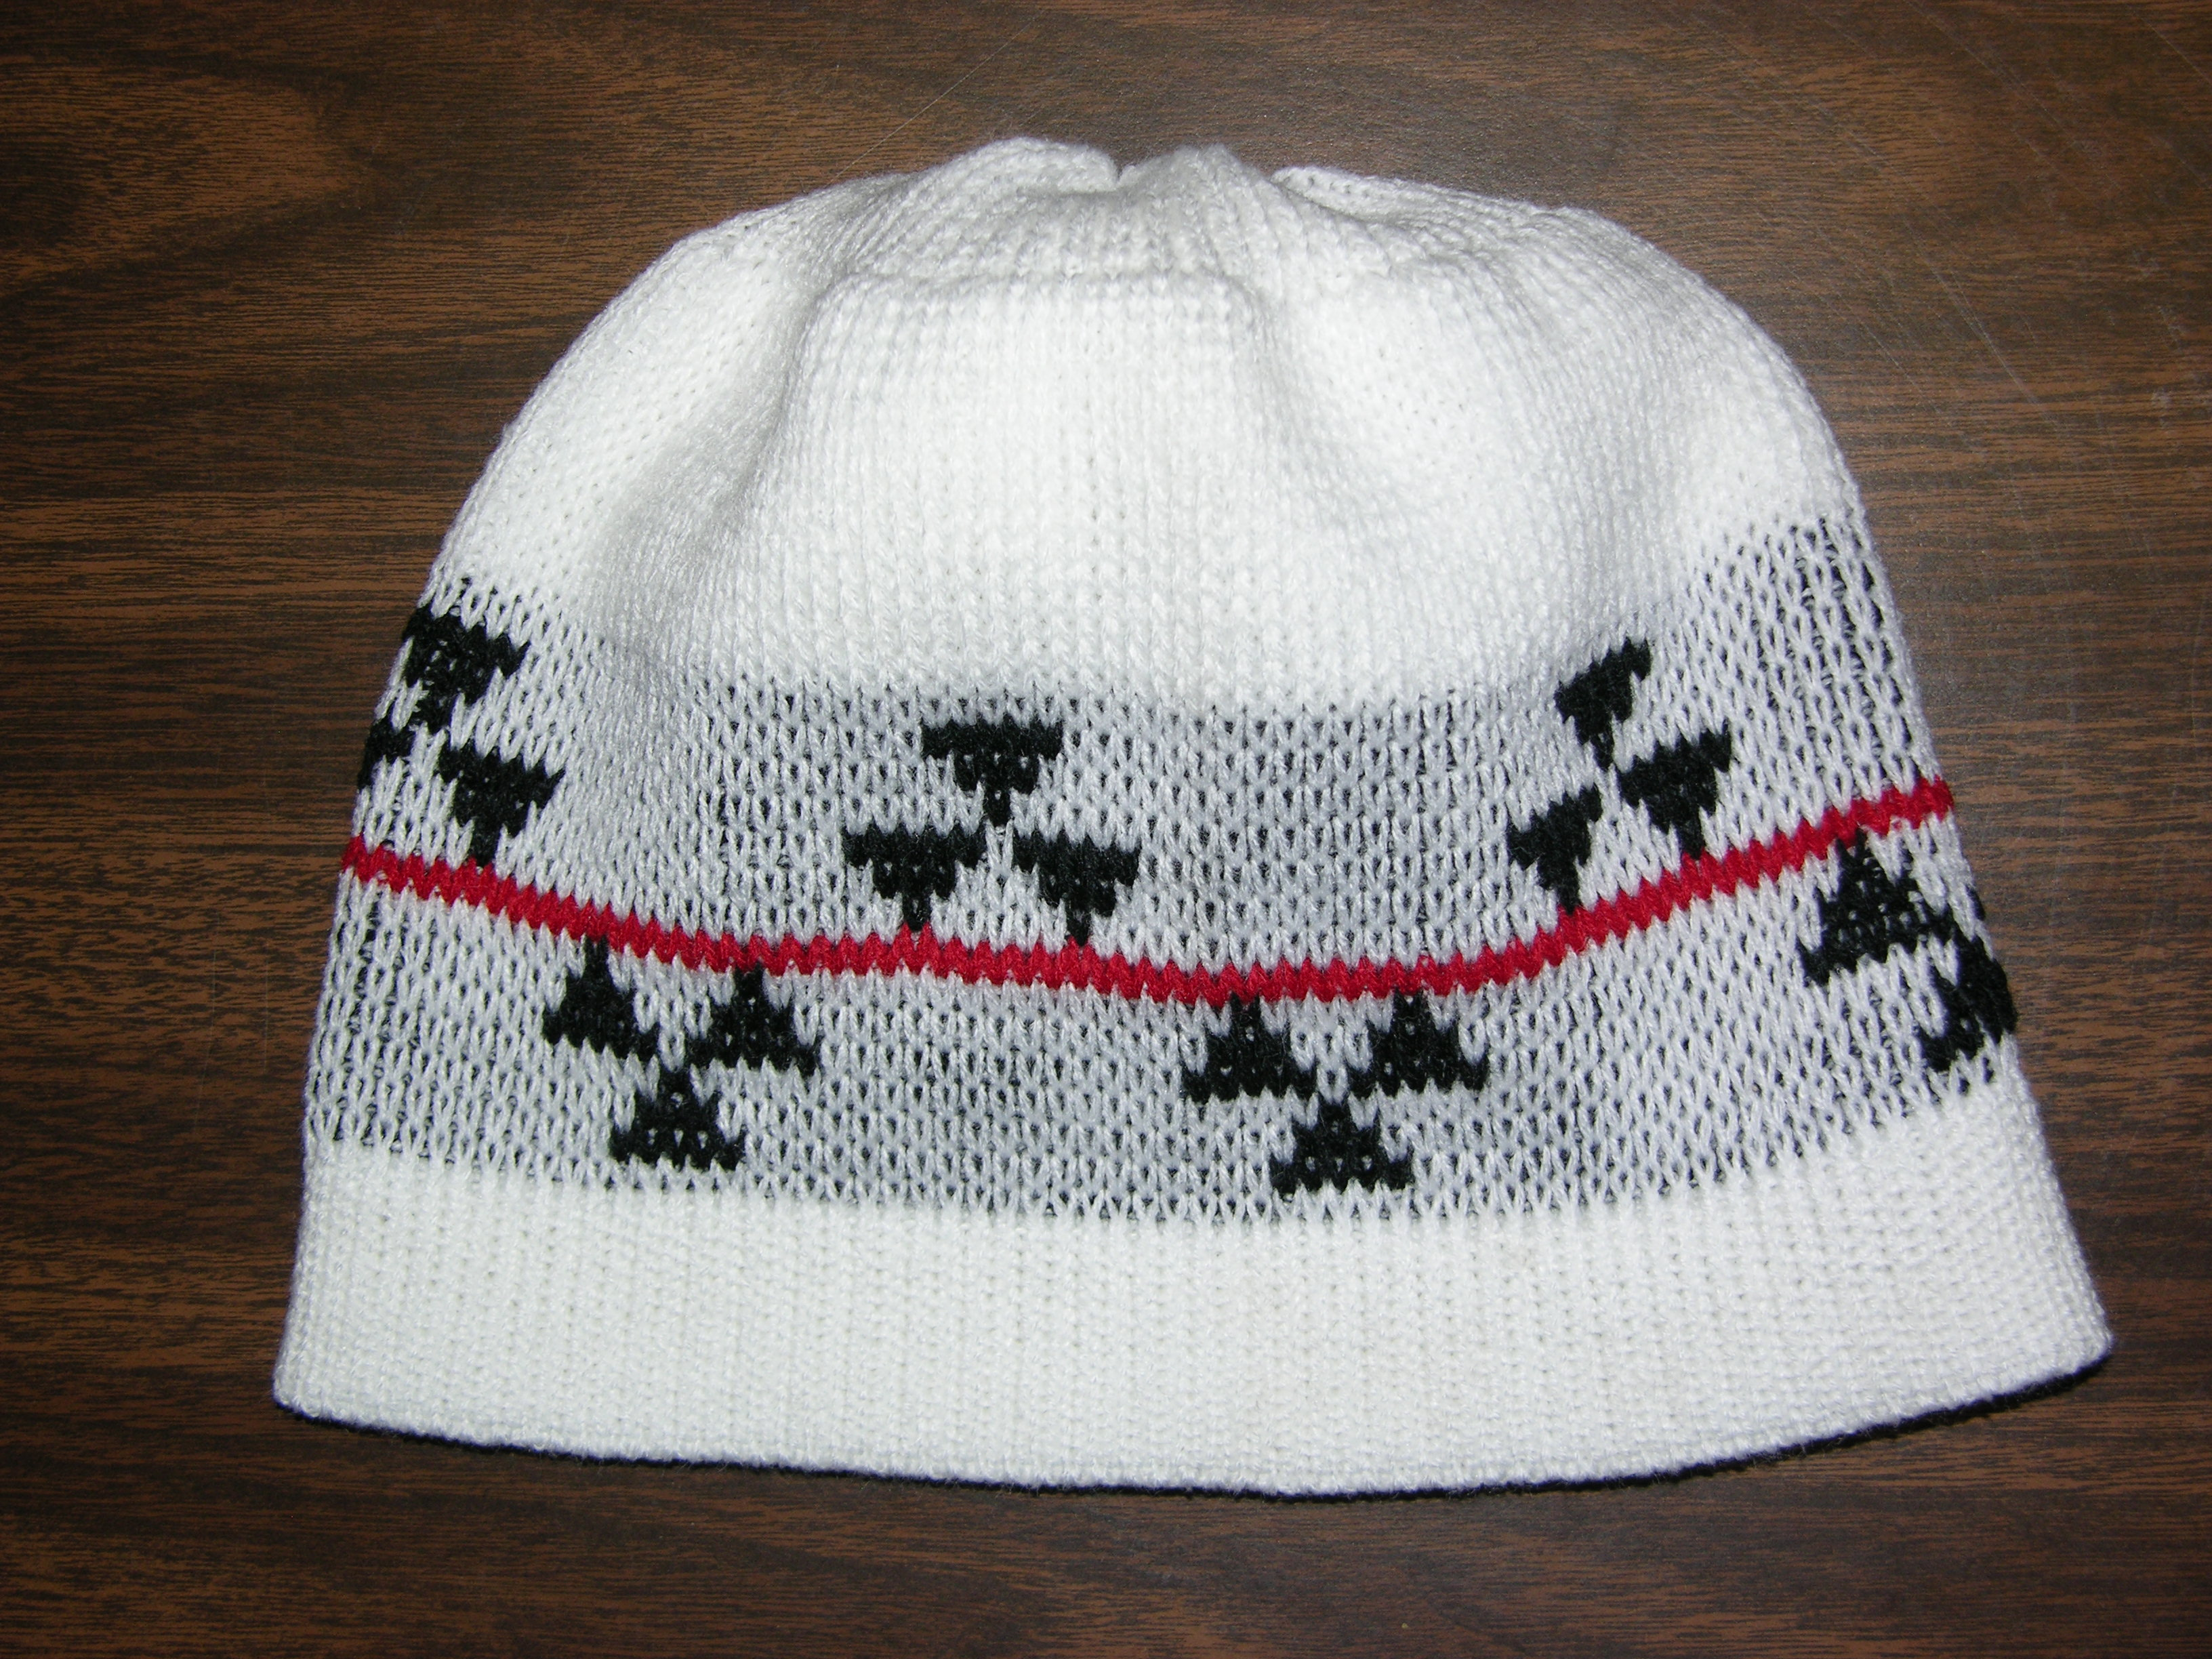 6feebbd0e98 A Snake Nose Design accents this Native Cap ~ Select OPTIONS